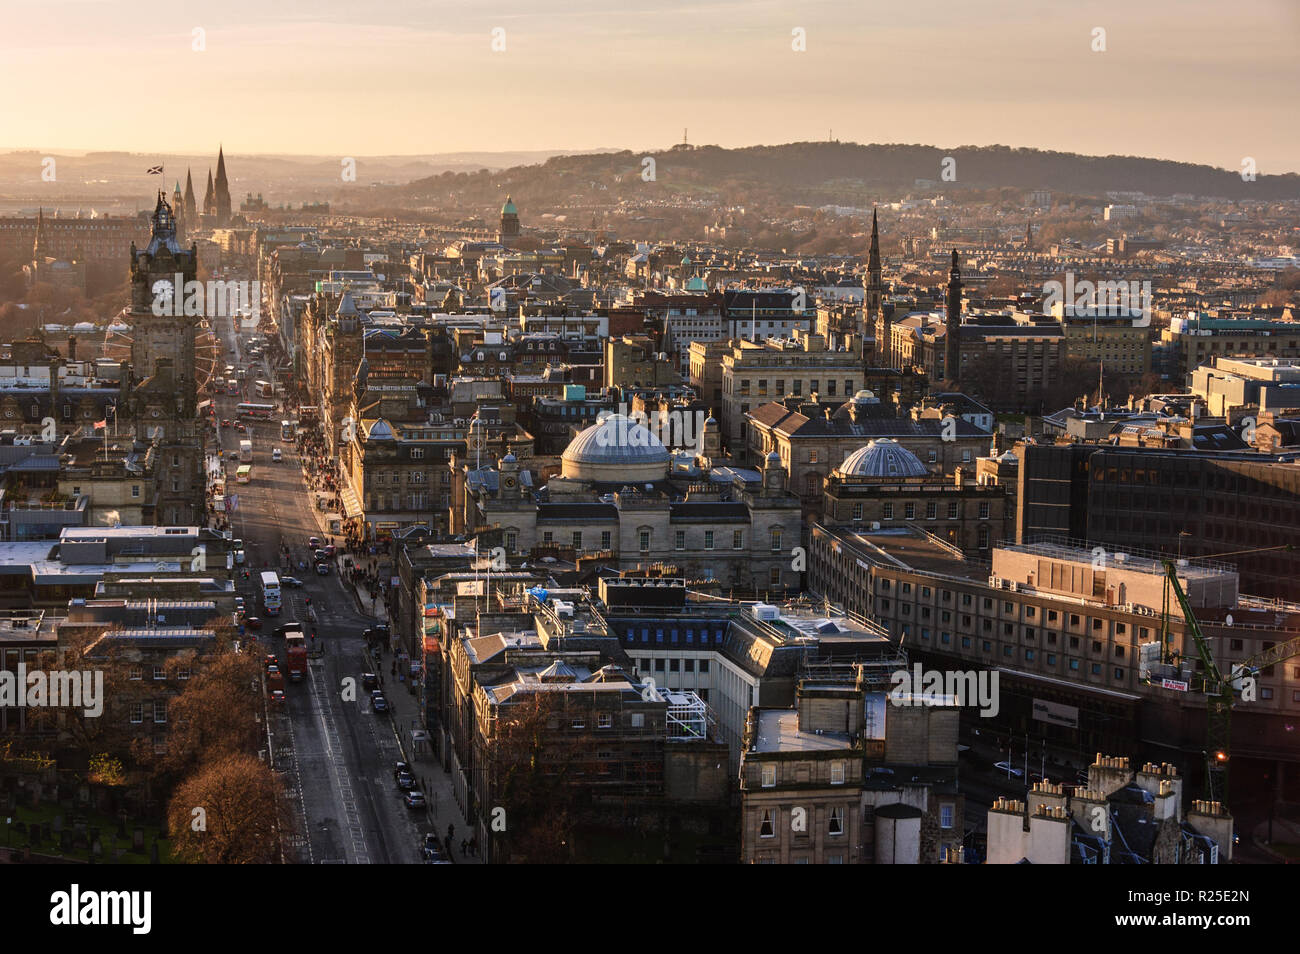 Shops and hotels at lit up by the winter evening sun on Princes Street in Edinburgh's Georgian New Town. - Stock Image